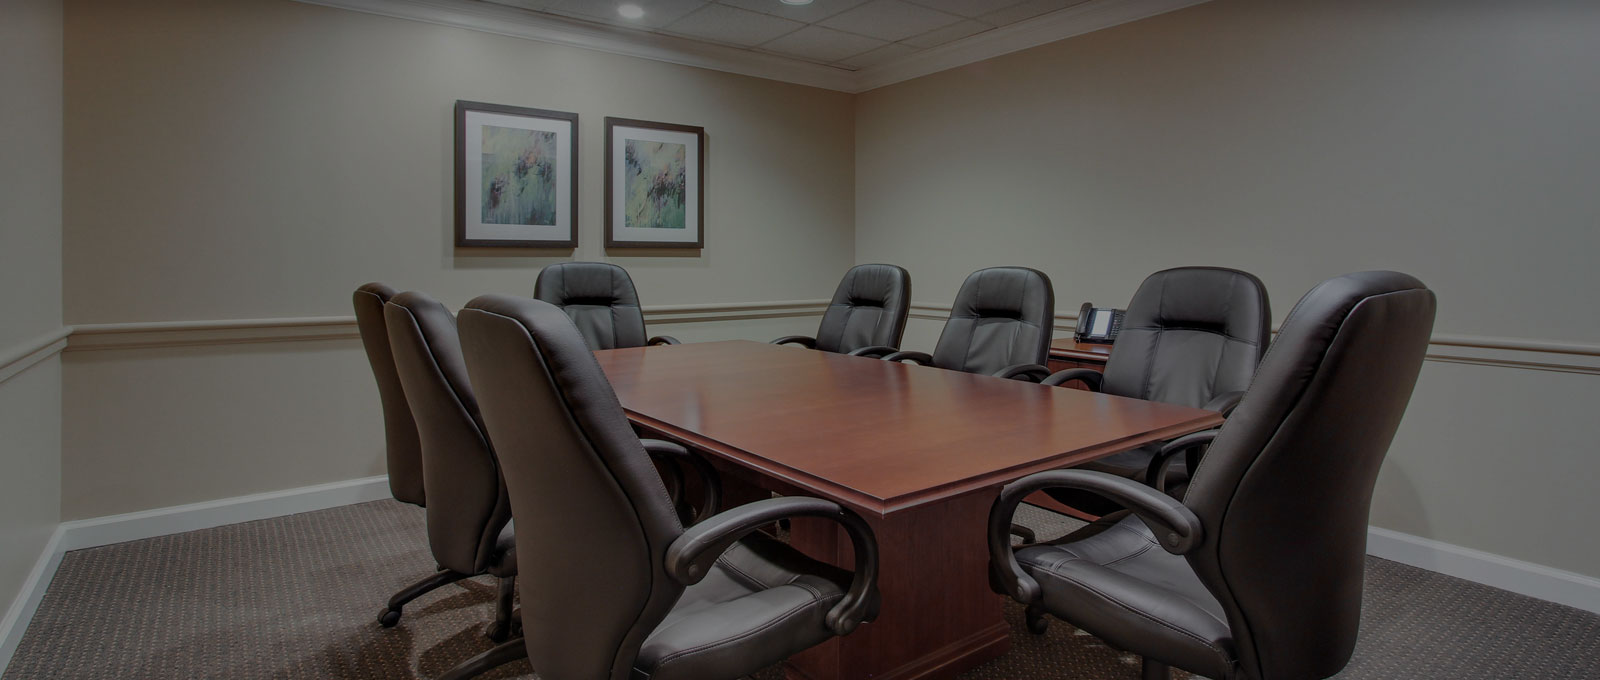 meeting rooms brentwood tn